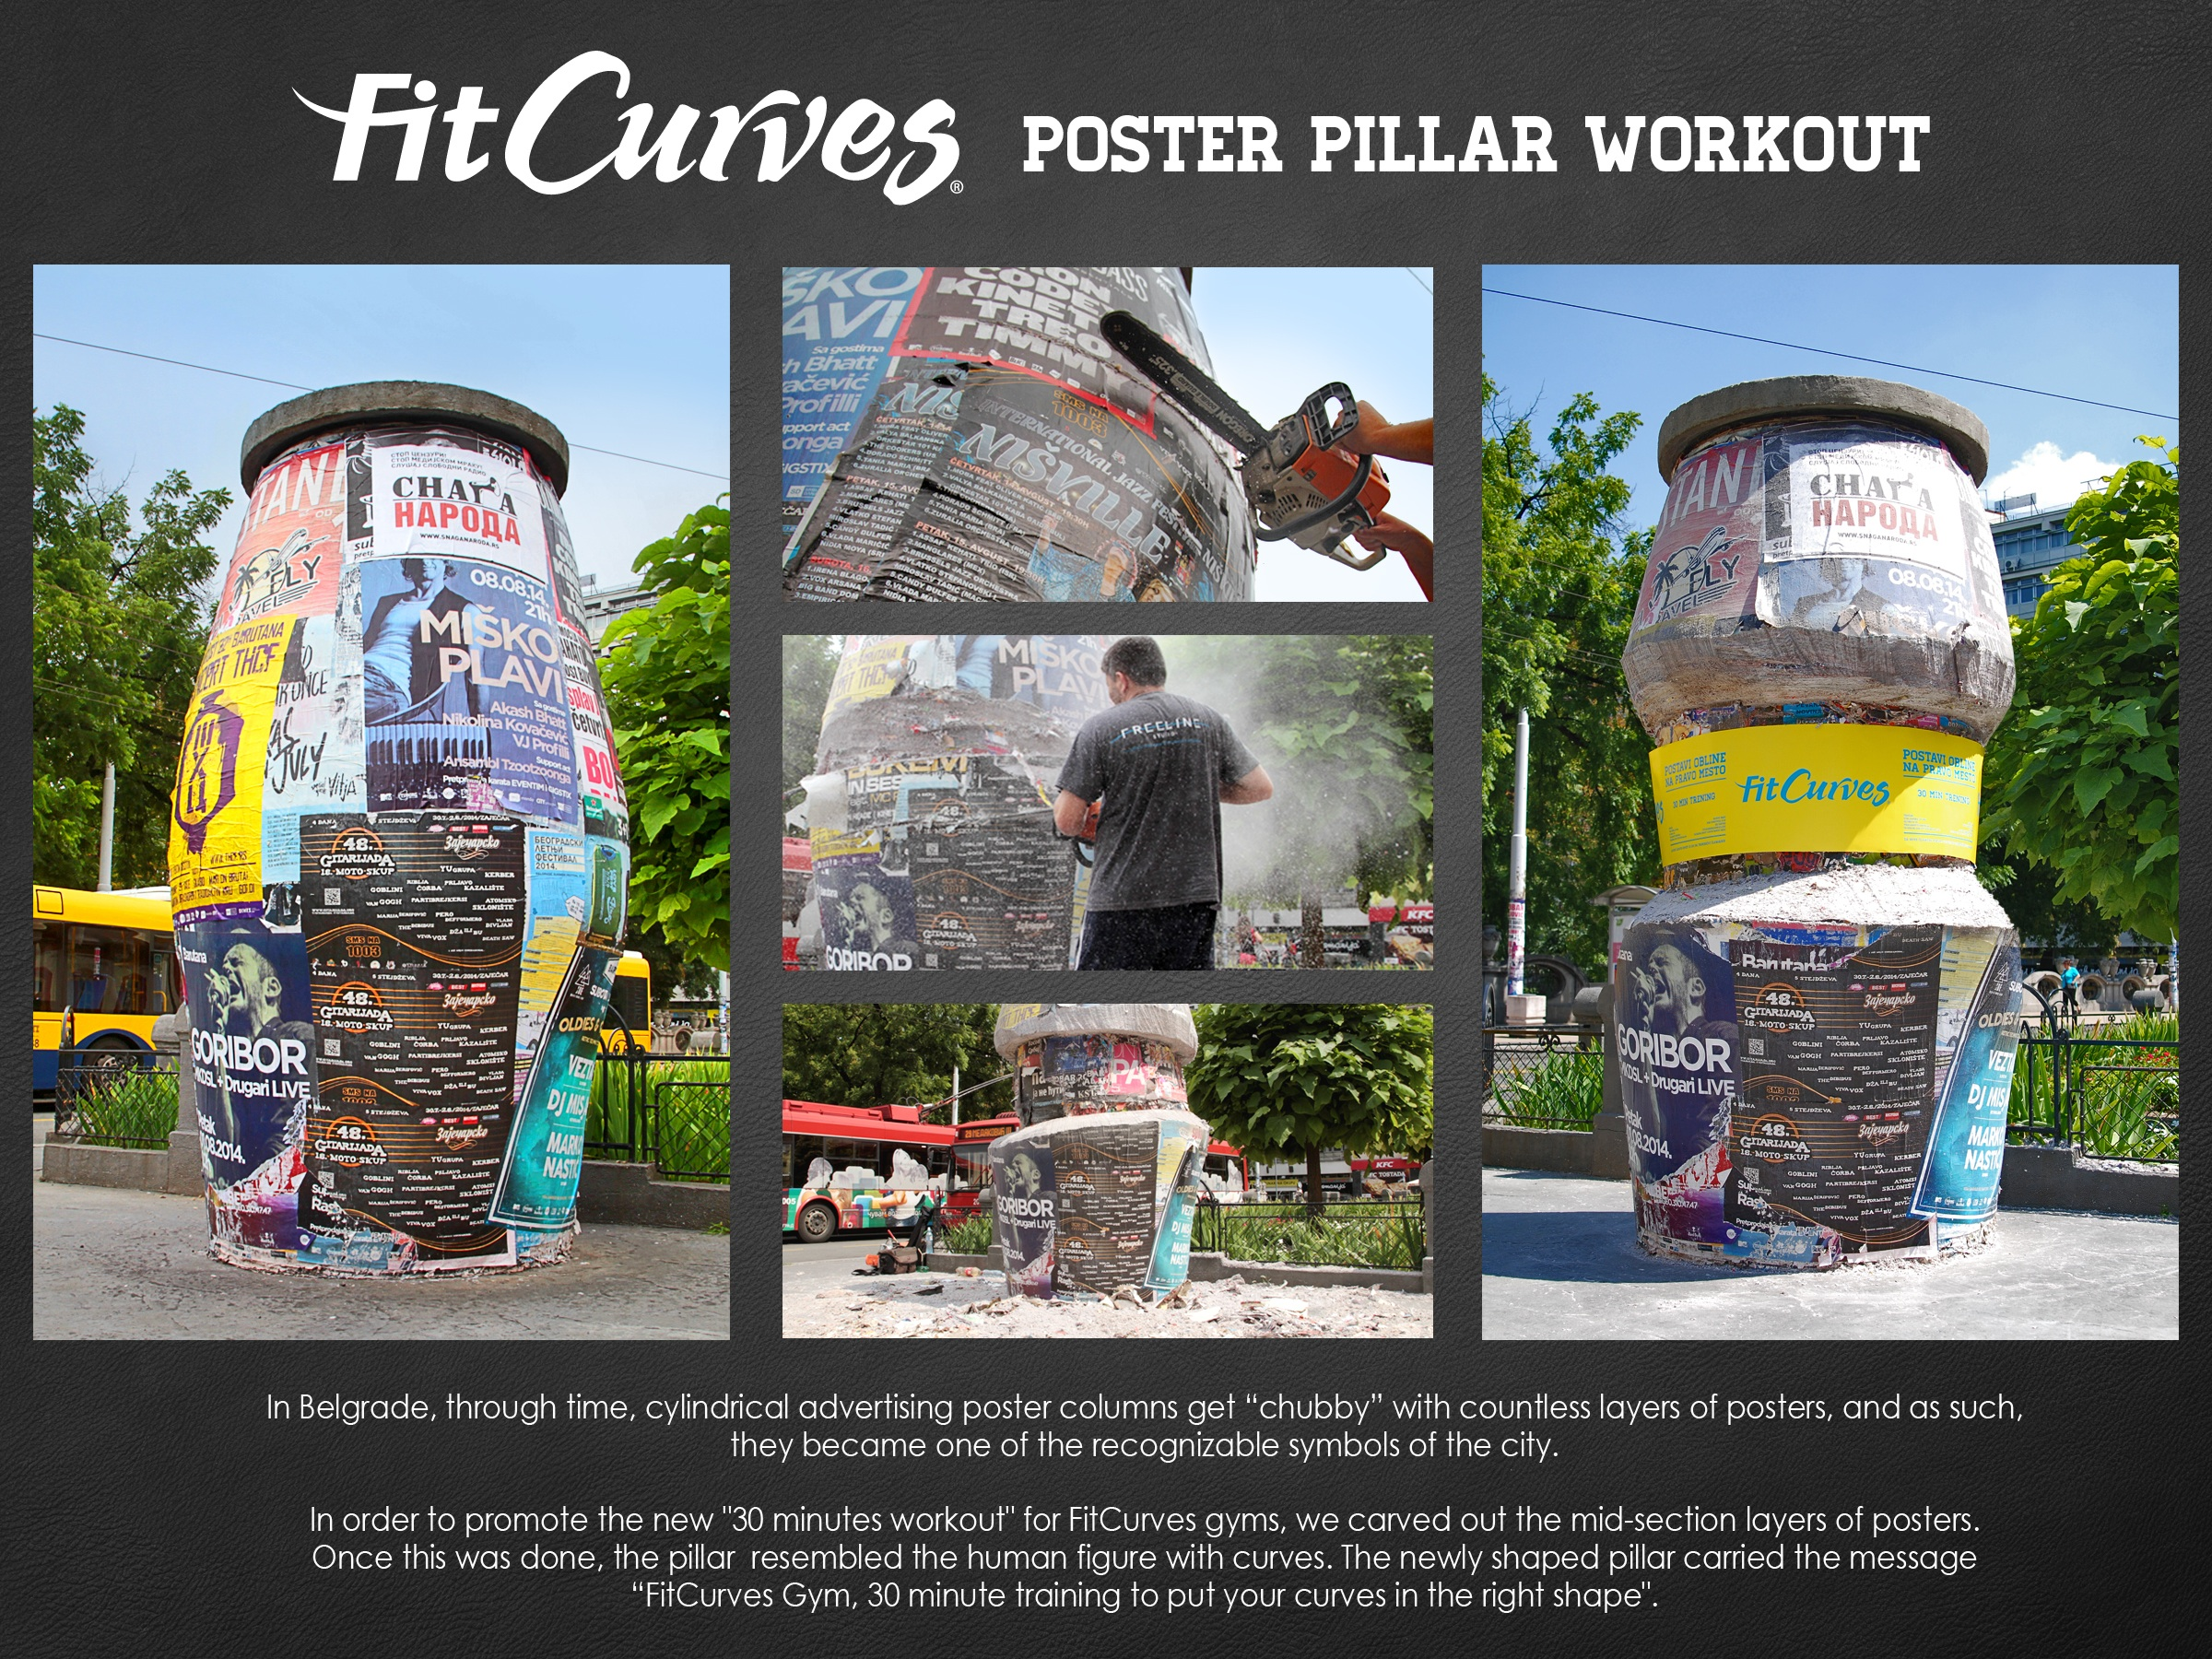 FitCurves-Poster-Pillar-Workout